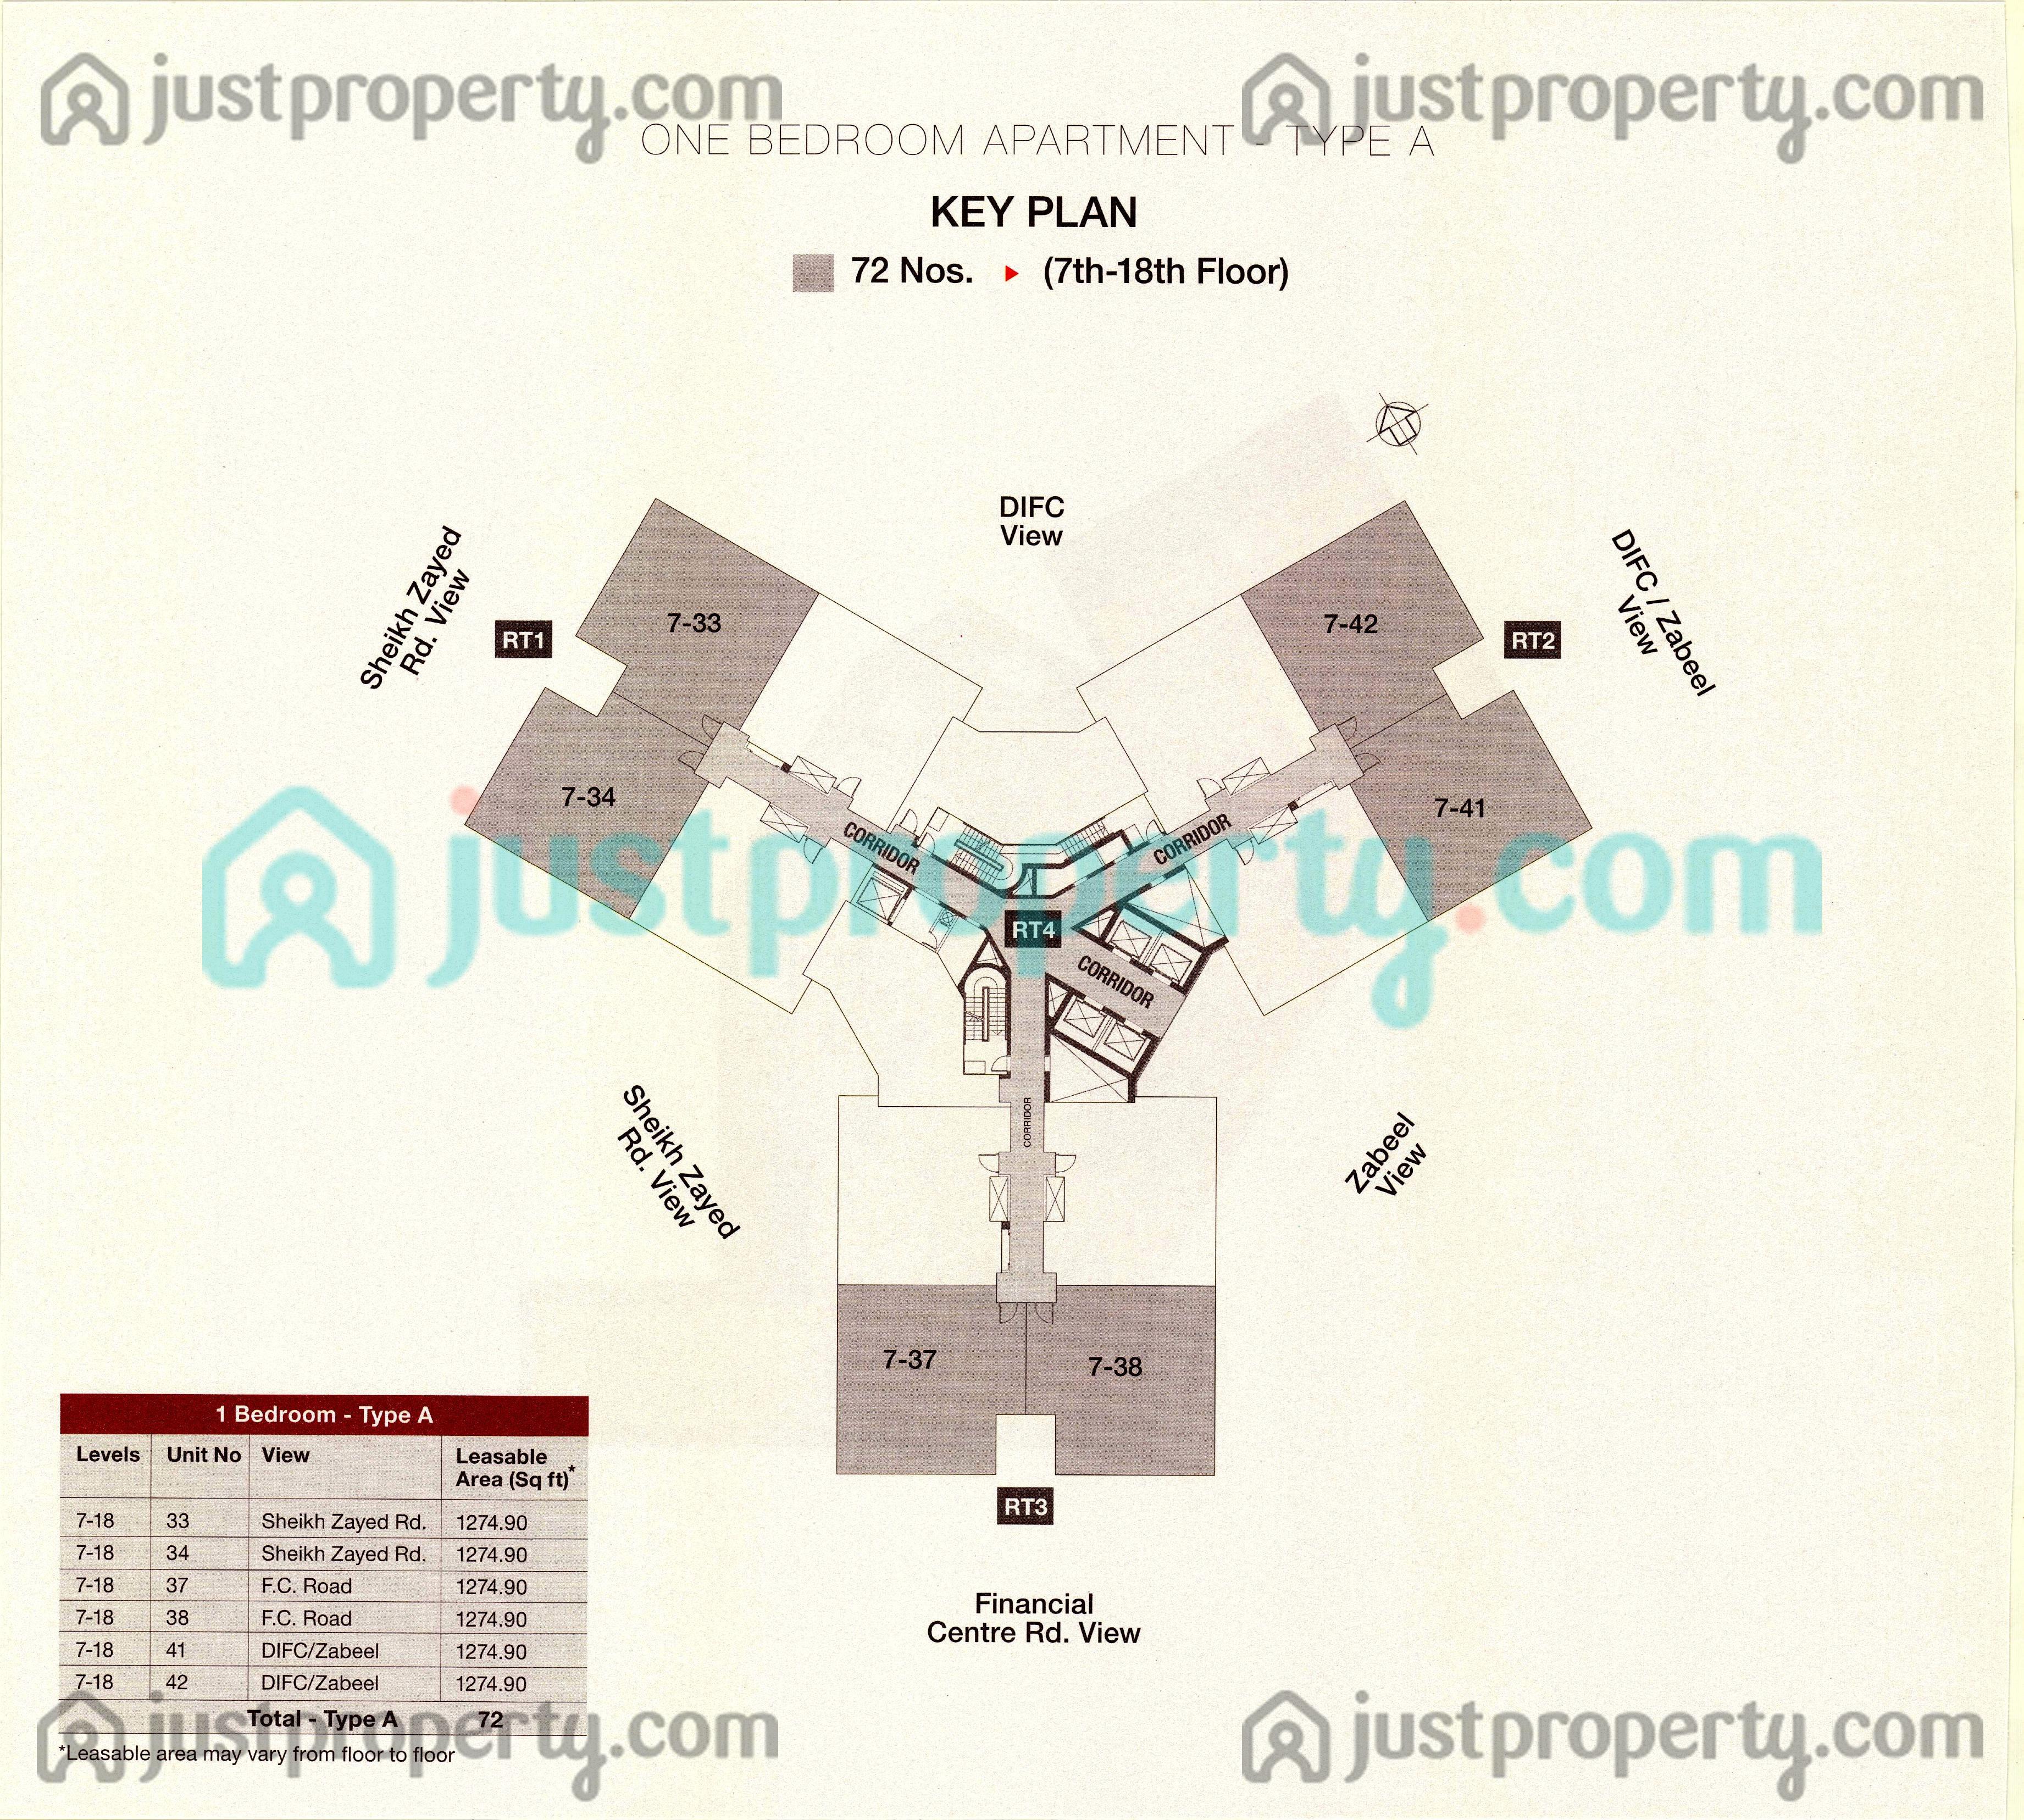 Floor Plans for Central Park at DIFC